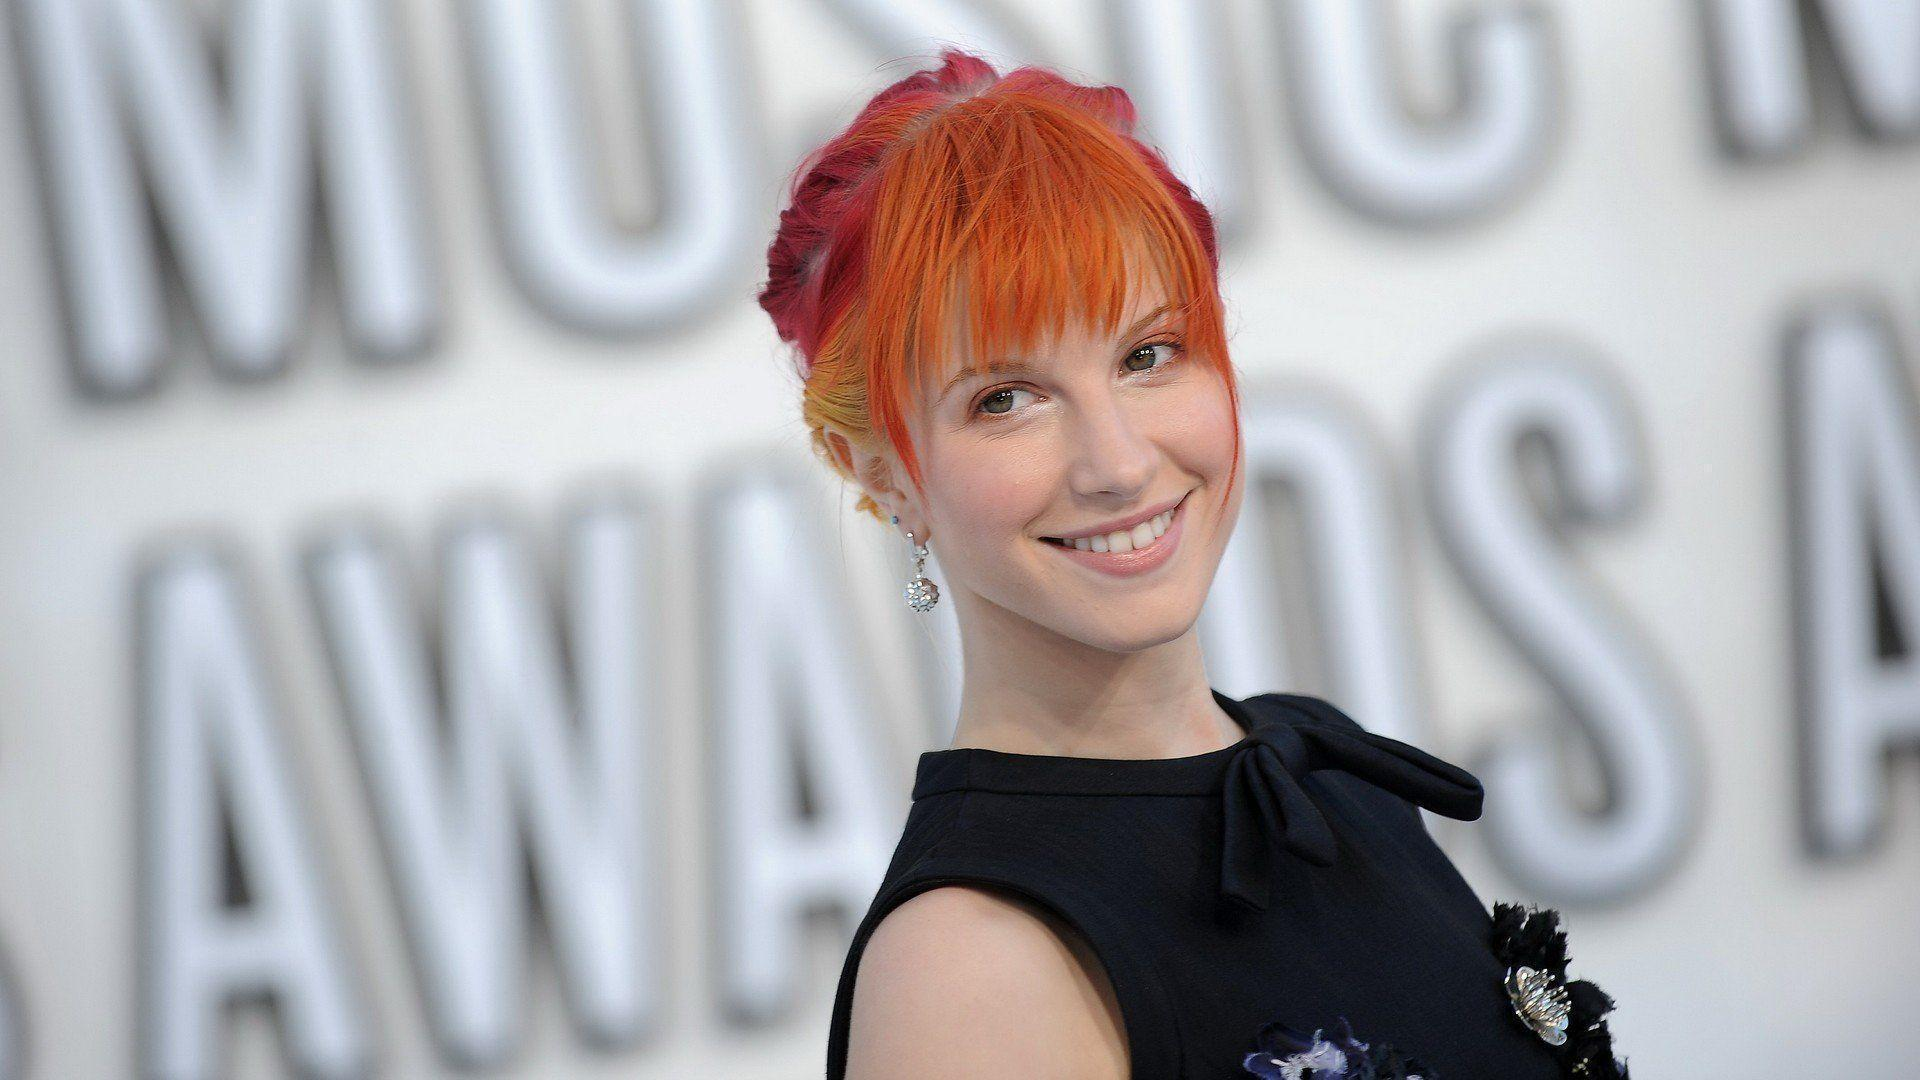 hayley williams free hd - photo #42